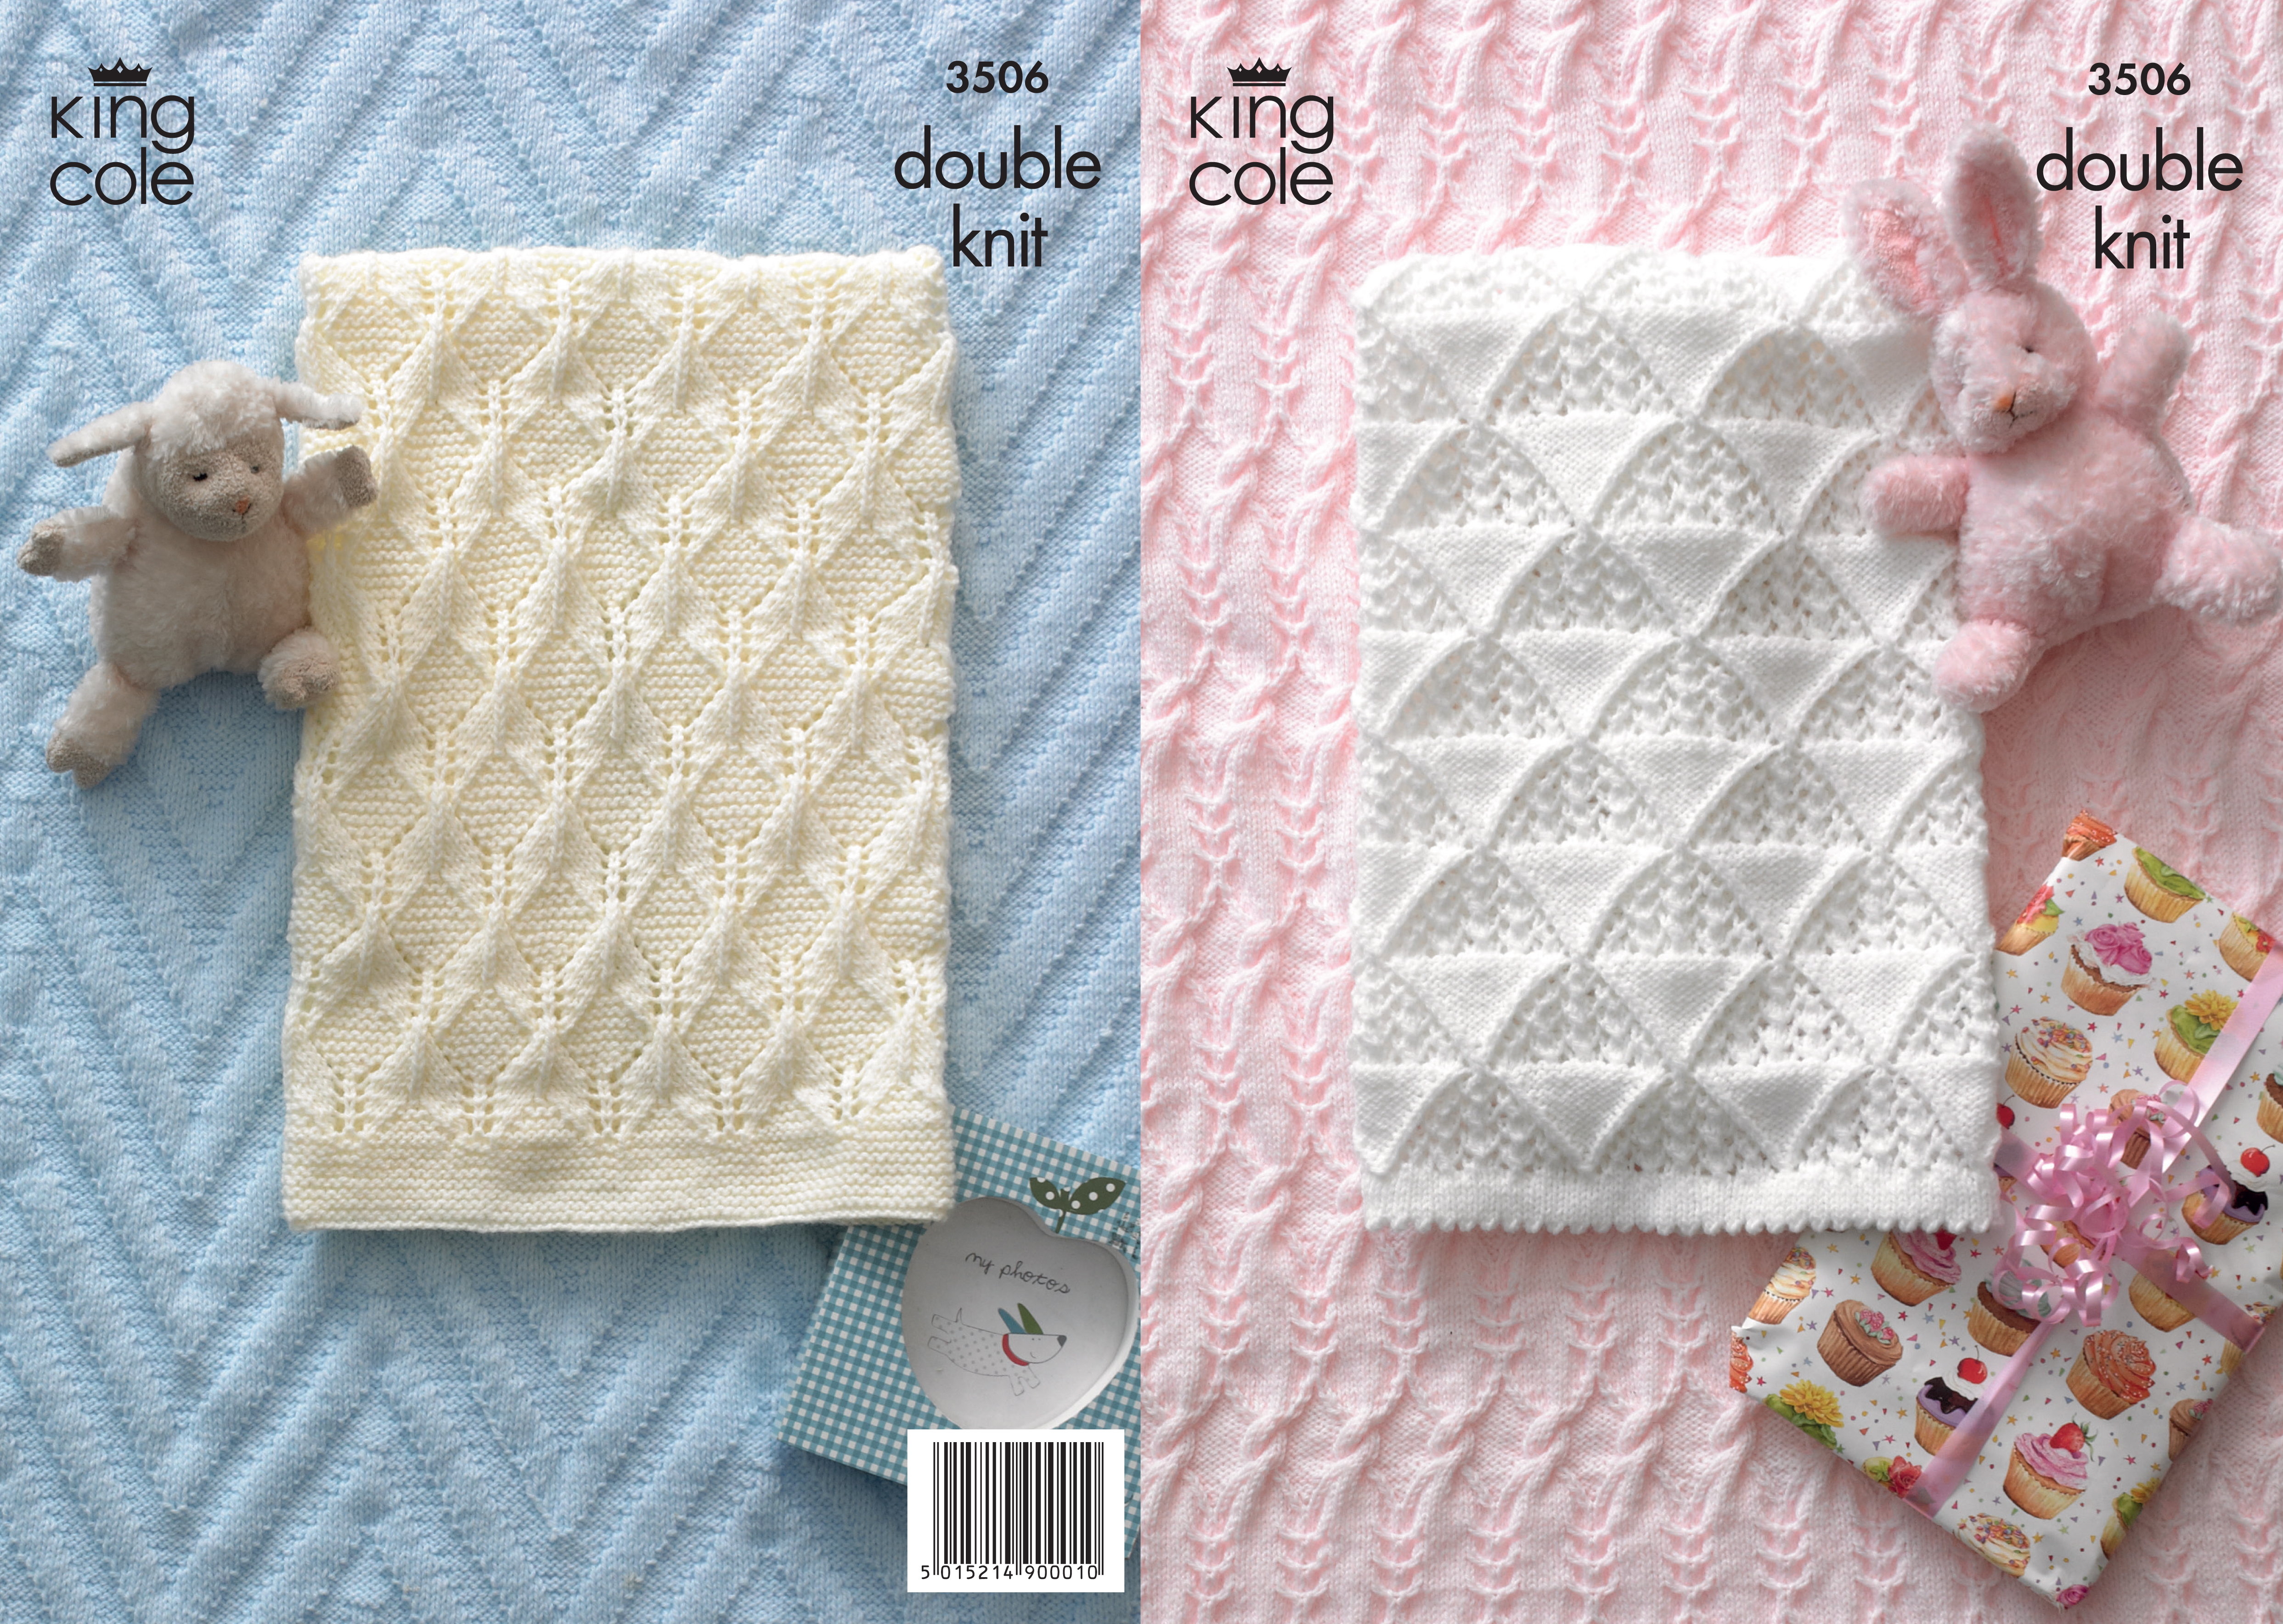 Baby King Cole DK Knitting Pattern Pram Cot Blanket Cable Knit Picot ...